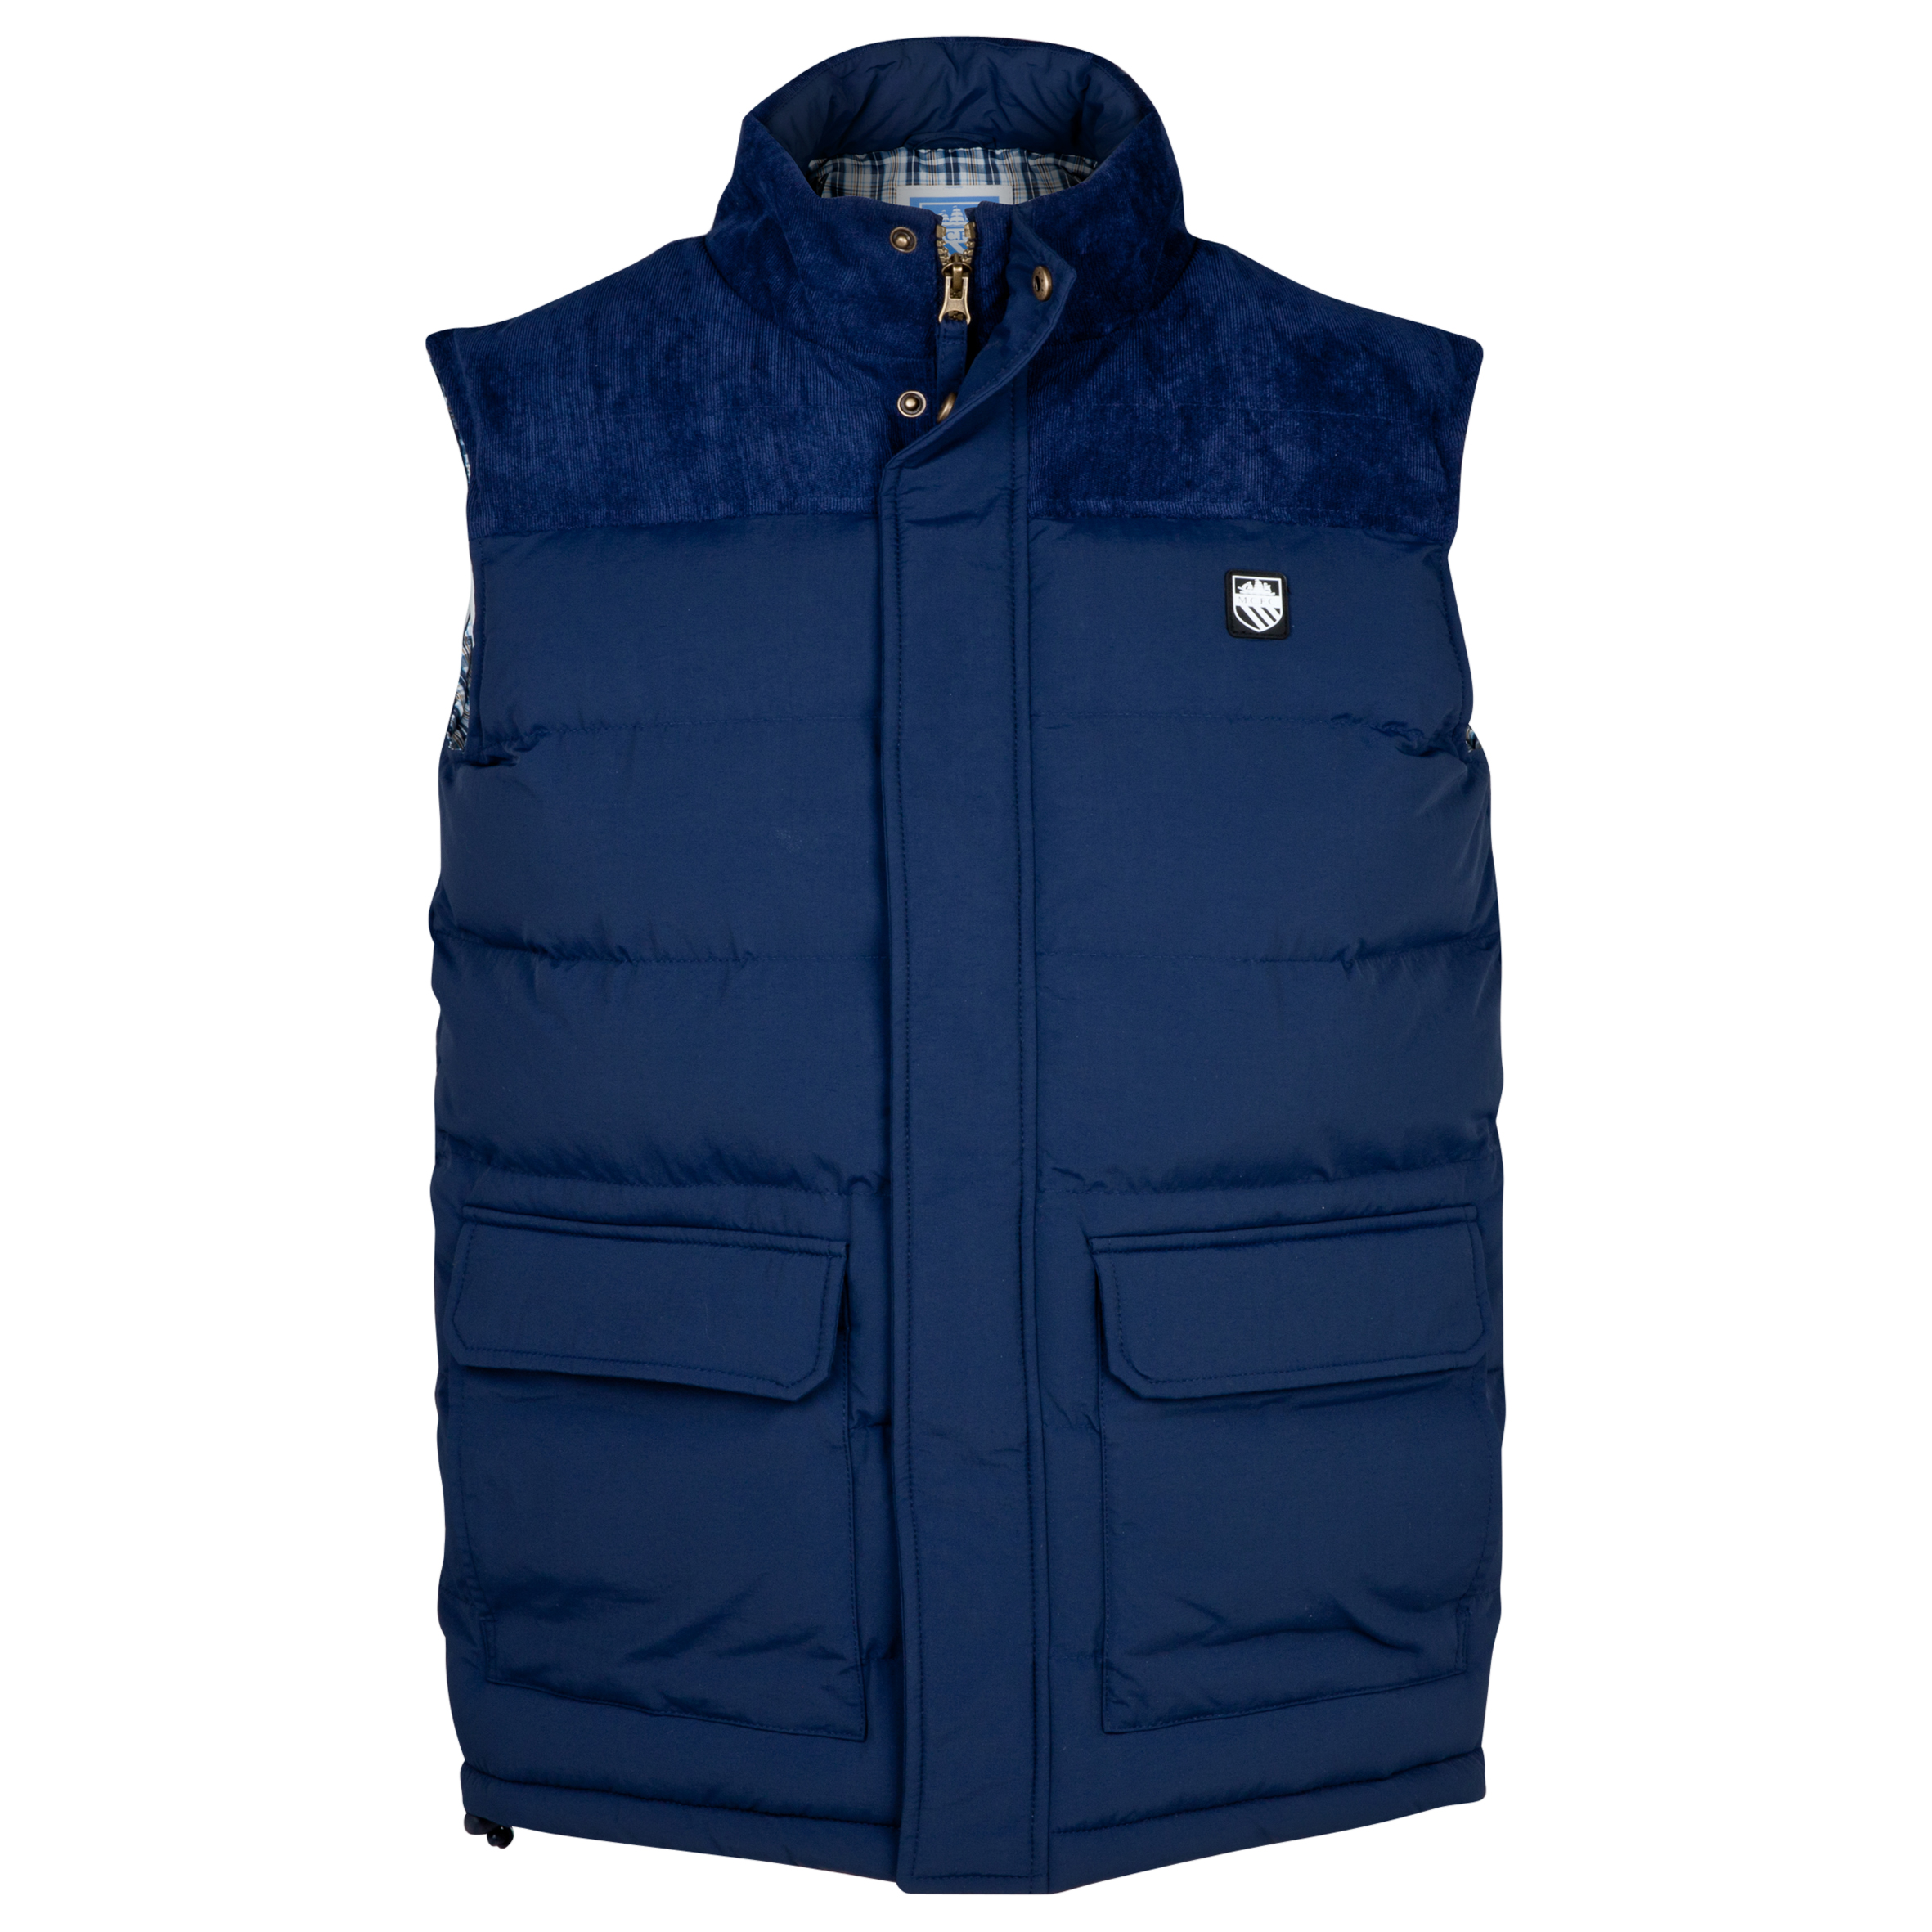 Manchester City Quebec Gilet - Mens Navy